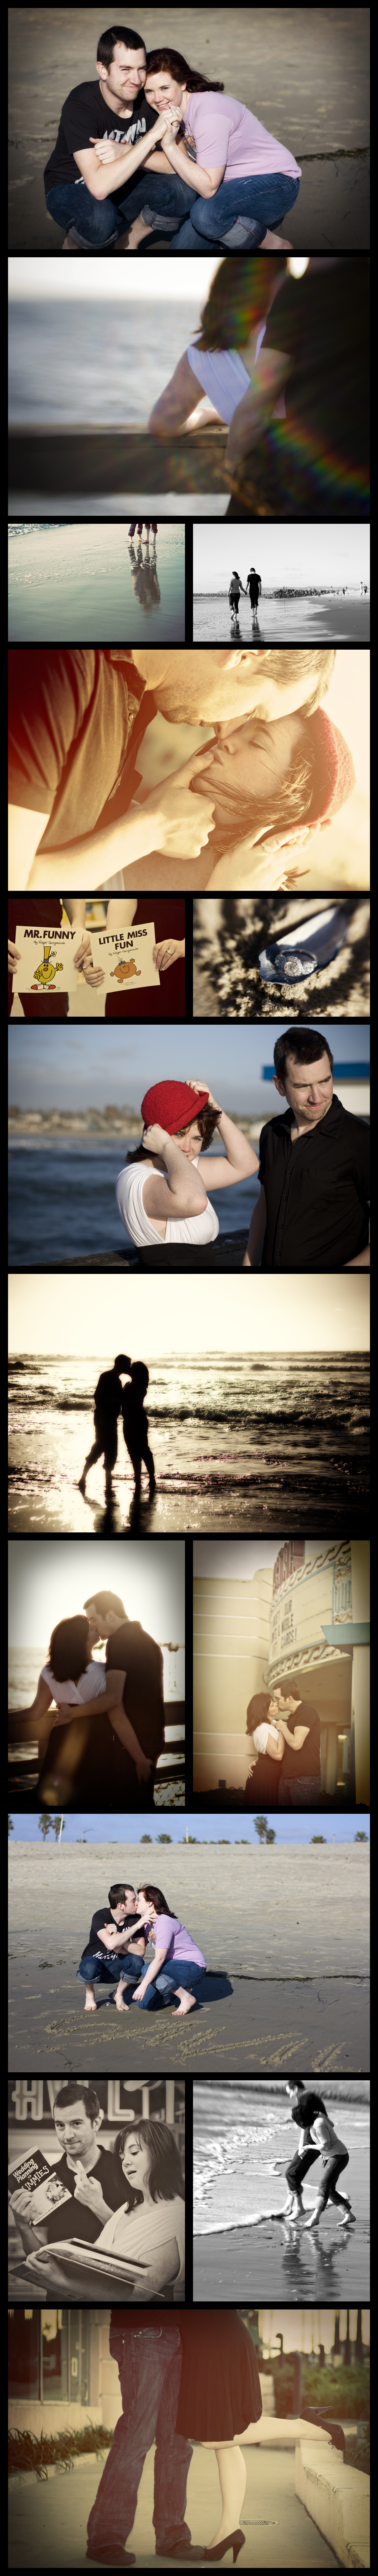 Engagement Portraits in San Diego... from Ocean Beach to Point Loma, Abby and James show their love